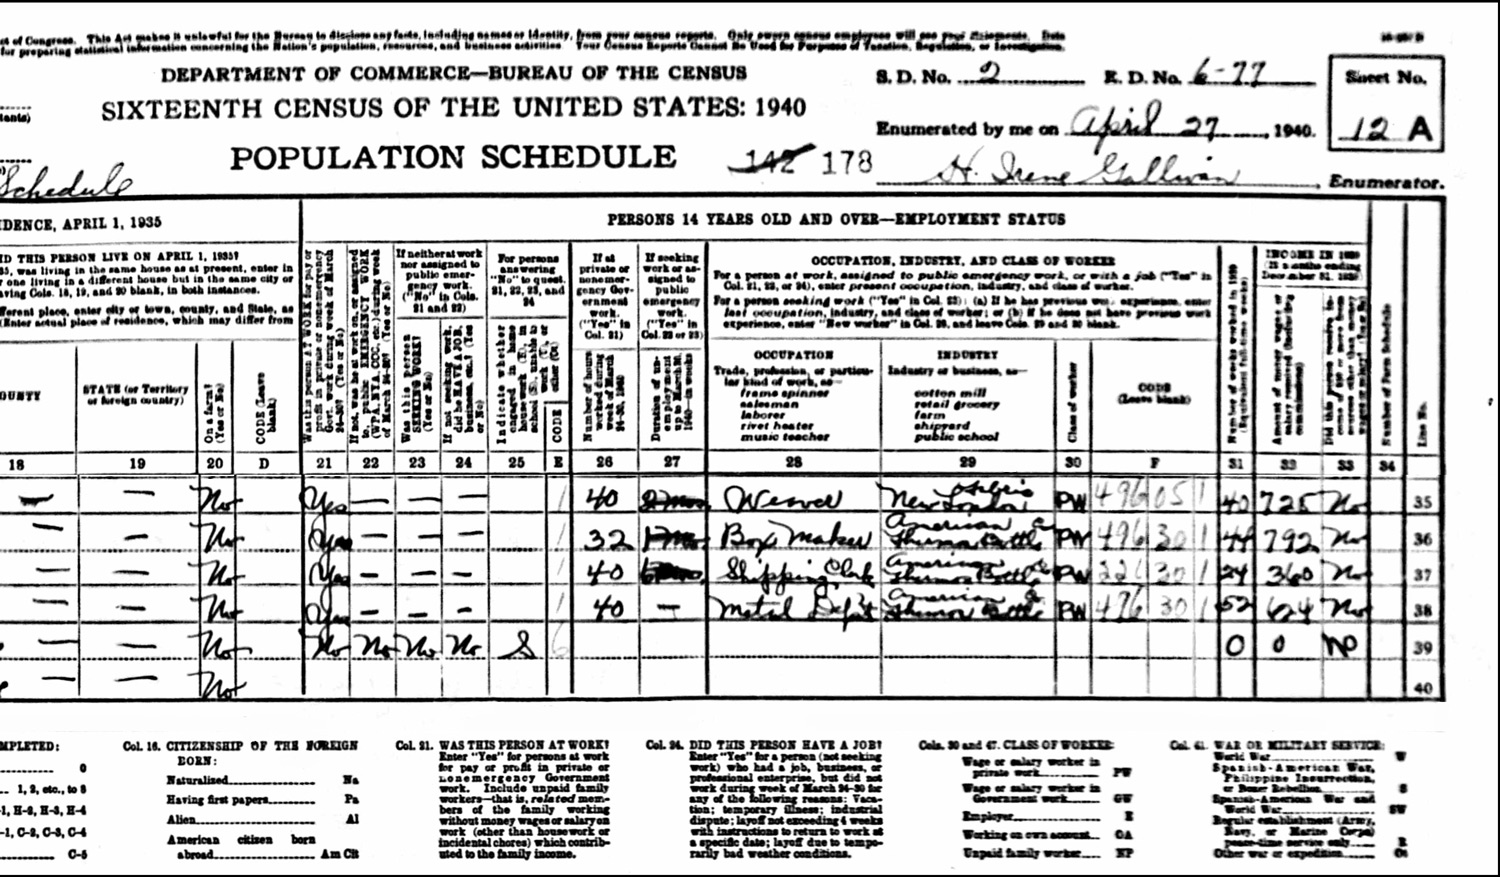 1940 US Federal Census Record for the John Janik Household (Right)